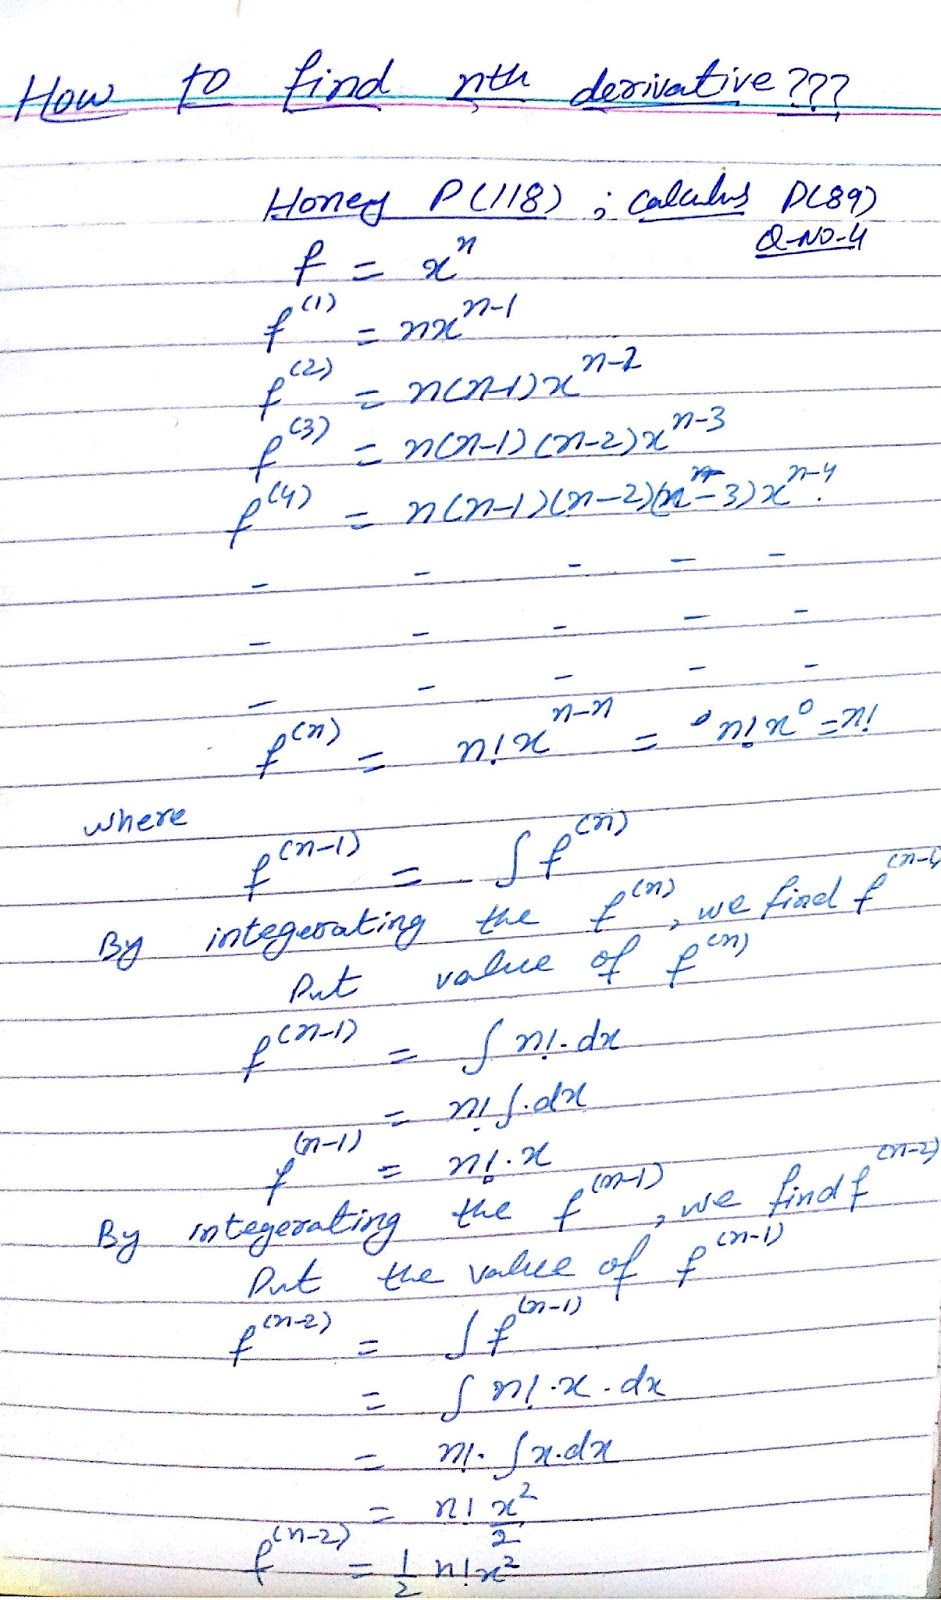 nth derivative calculator,nth derivative formula calculator,nth derivative formula pdf,how to find the nth derivative of a trigonometric function,nth derivative problems,finding the nth derivative using maclaurin series,nth derivative problems pdf,nth derivative notation,nth derivative of cosx,nth derivative of sinx,how to find the nth derivative of a function,nth derivative problems,nth derivative calculator,derivative of trigonometric functions pdf,higher derivatives,derivative of trig functions,find nth derivative,nth derivative problems pdf,nth derivative formula pdf,nth derivative of product of two functions,nth order derivative formula,nth derivative formula calculator,how to find the nth derivative of a trigonometric function,deriving geometric series formula